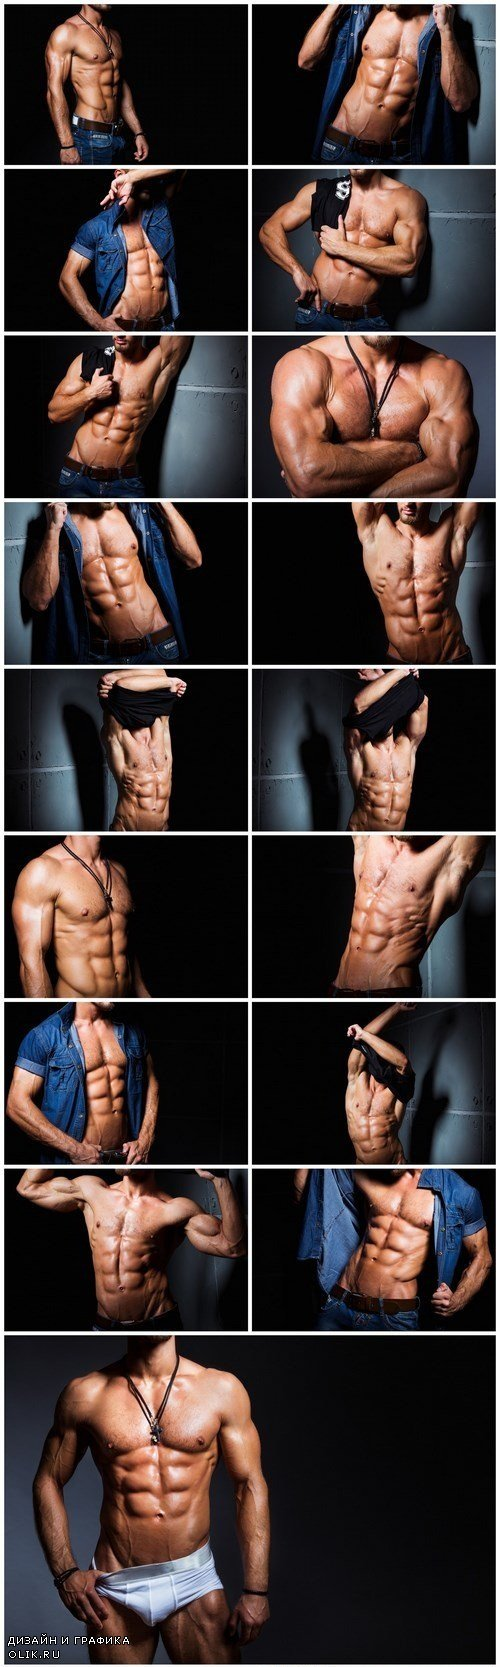 Muscular and sexy torso of young man having perfect abs 2 - 18xUHQ JPEG